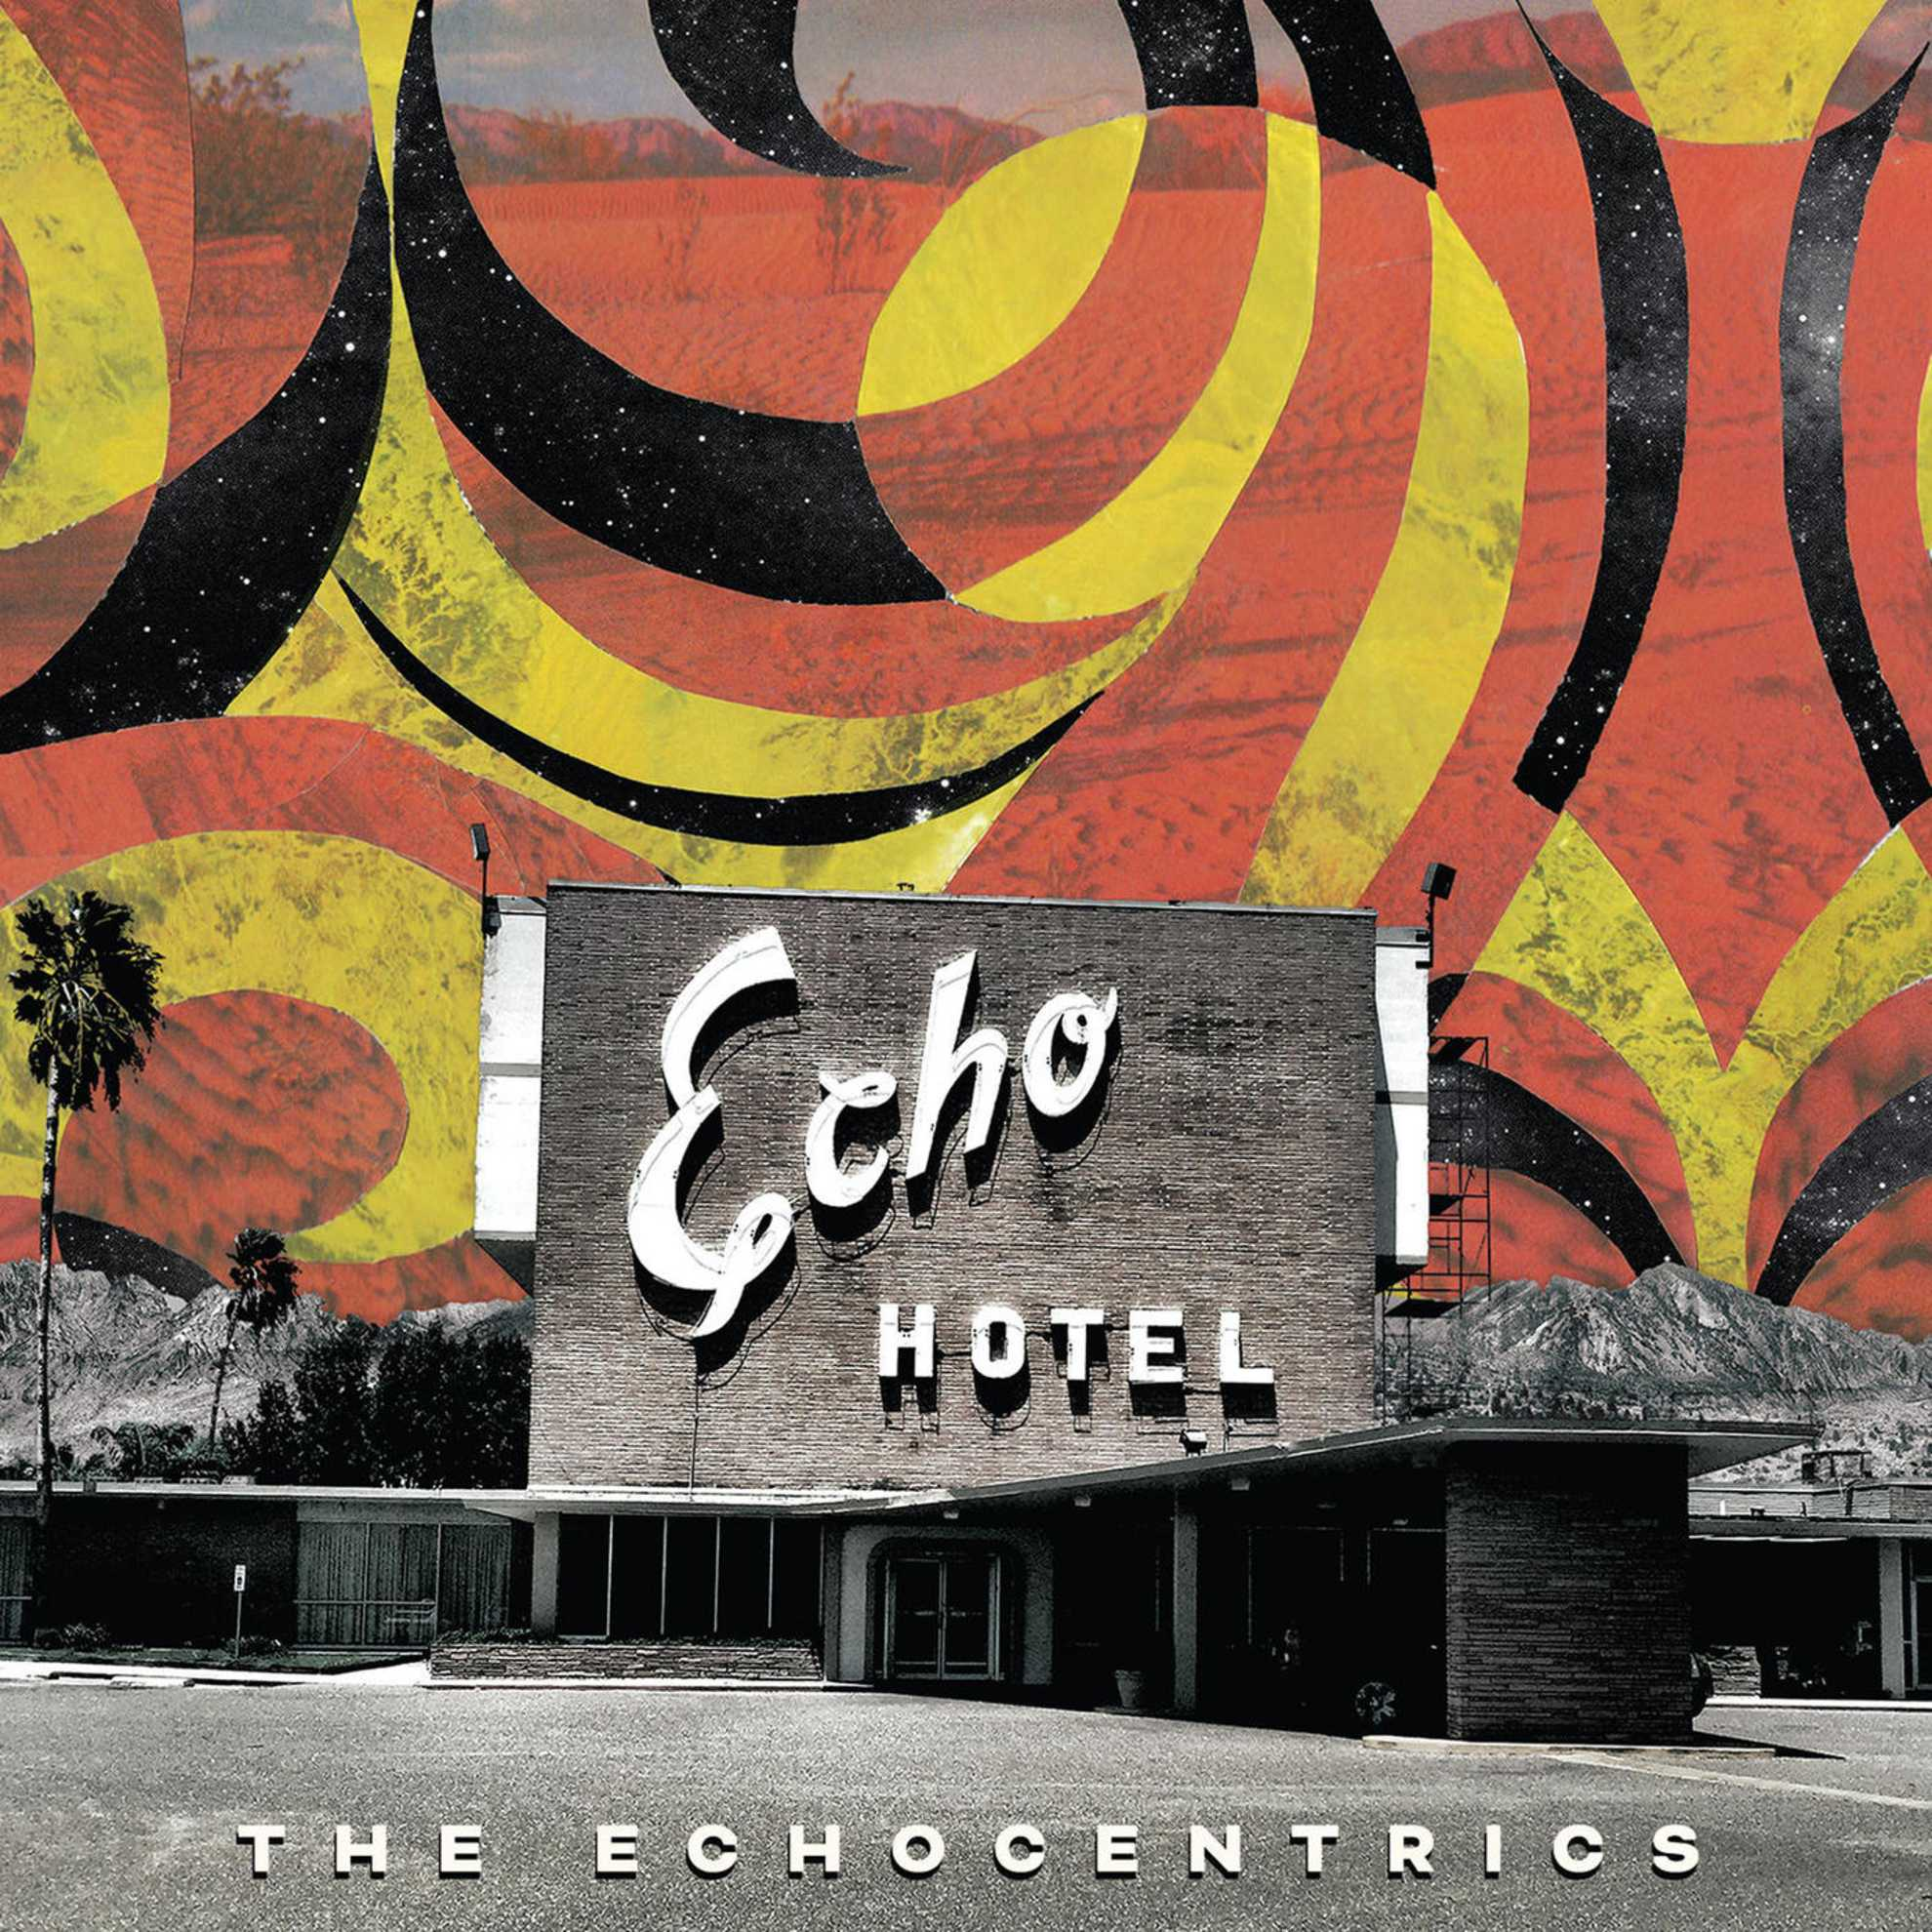 echocentric-echo-hotel-review-mixgrill-albums